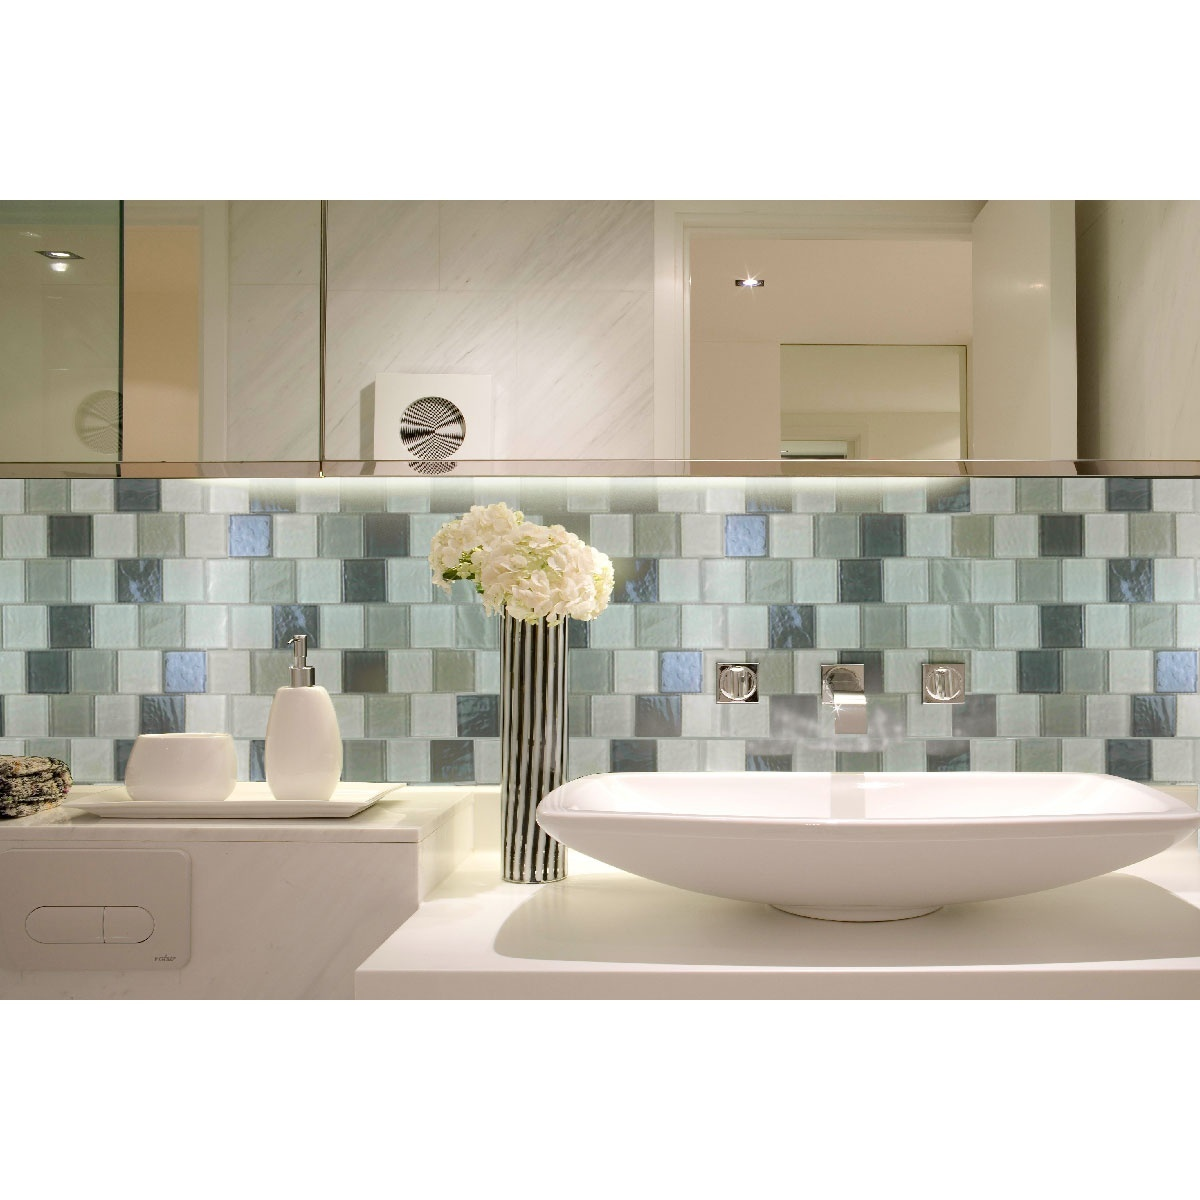 "Geo 2"" x 2"" Textured Gray Glass Brick Backsplash Mosaic Wall Tile"